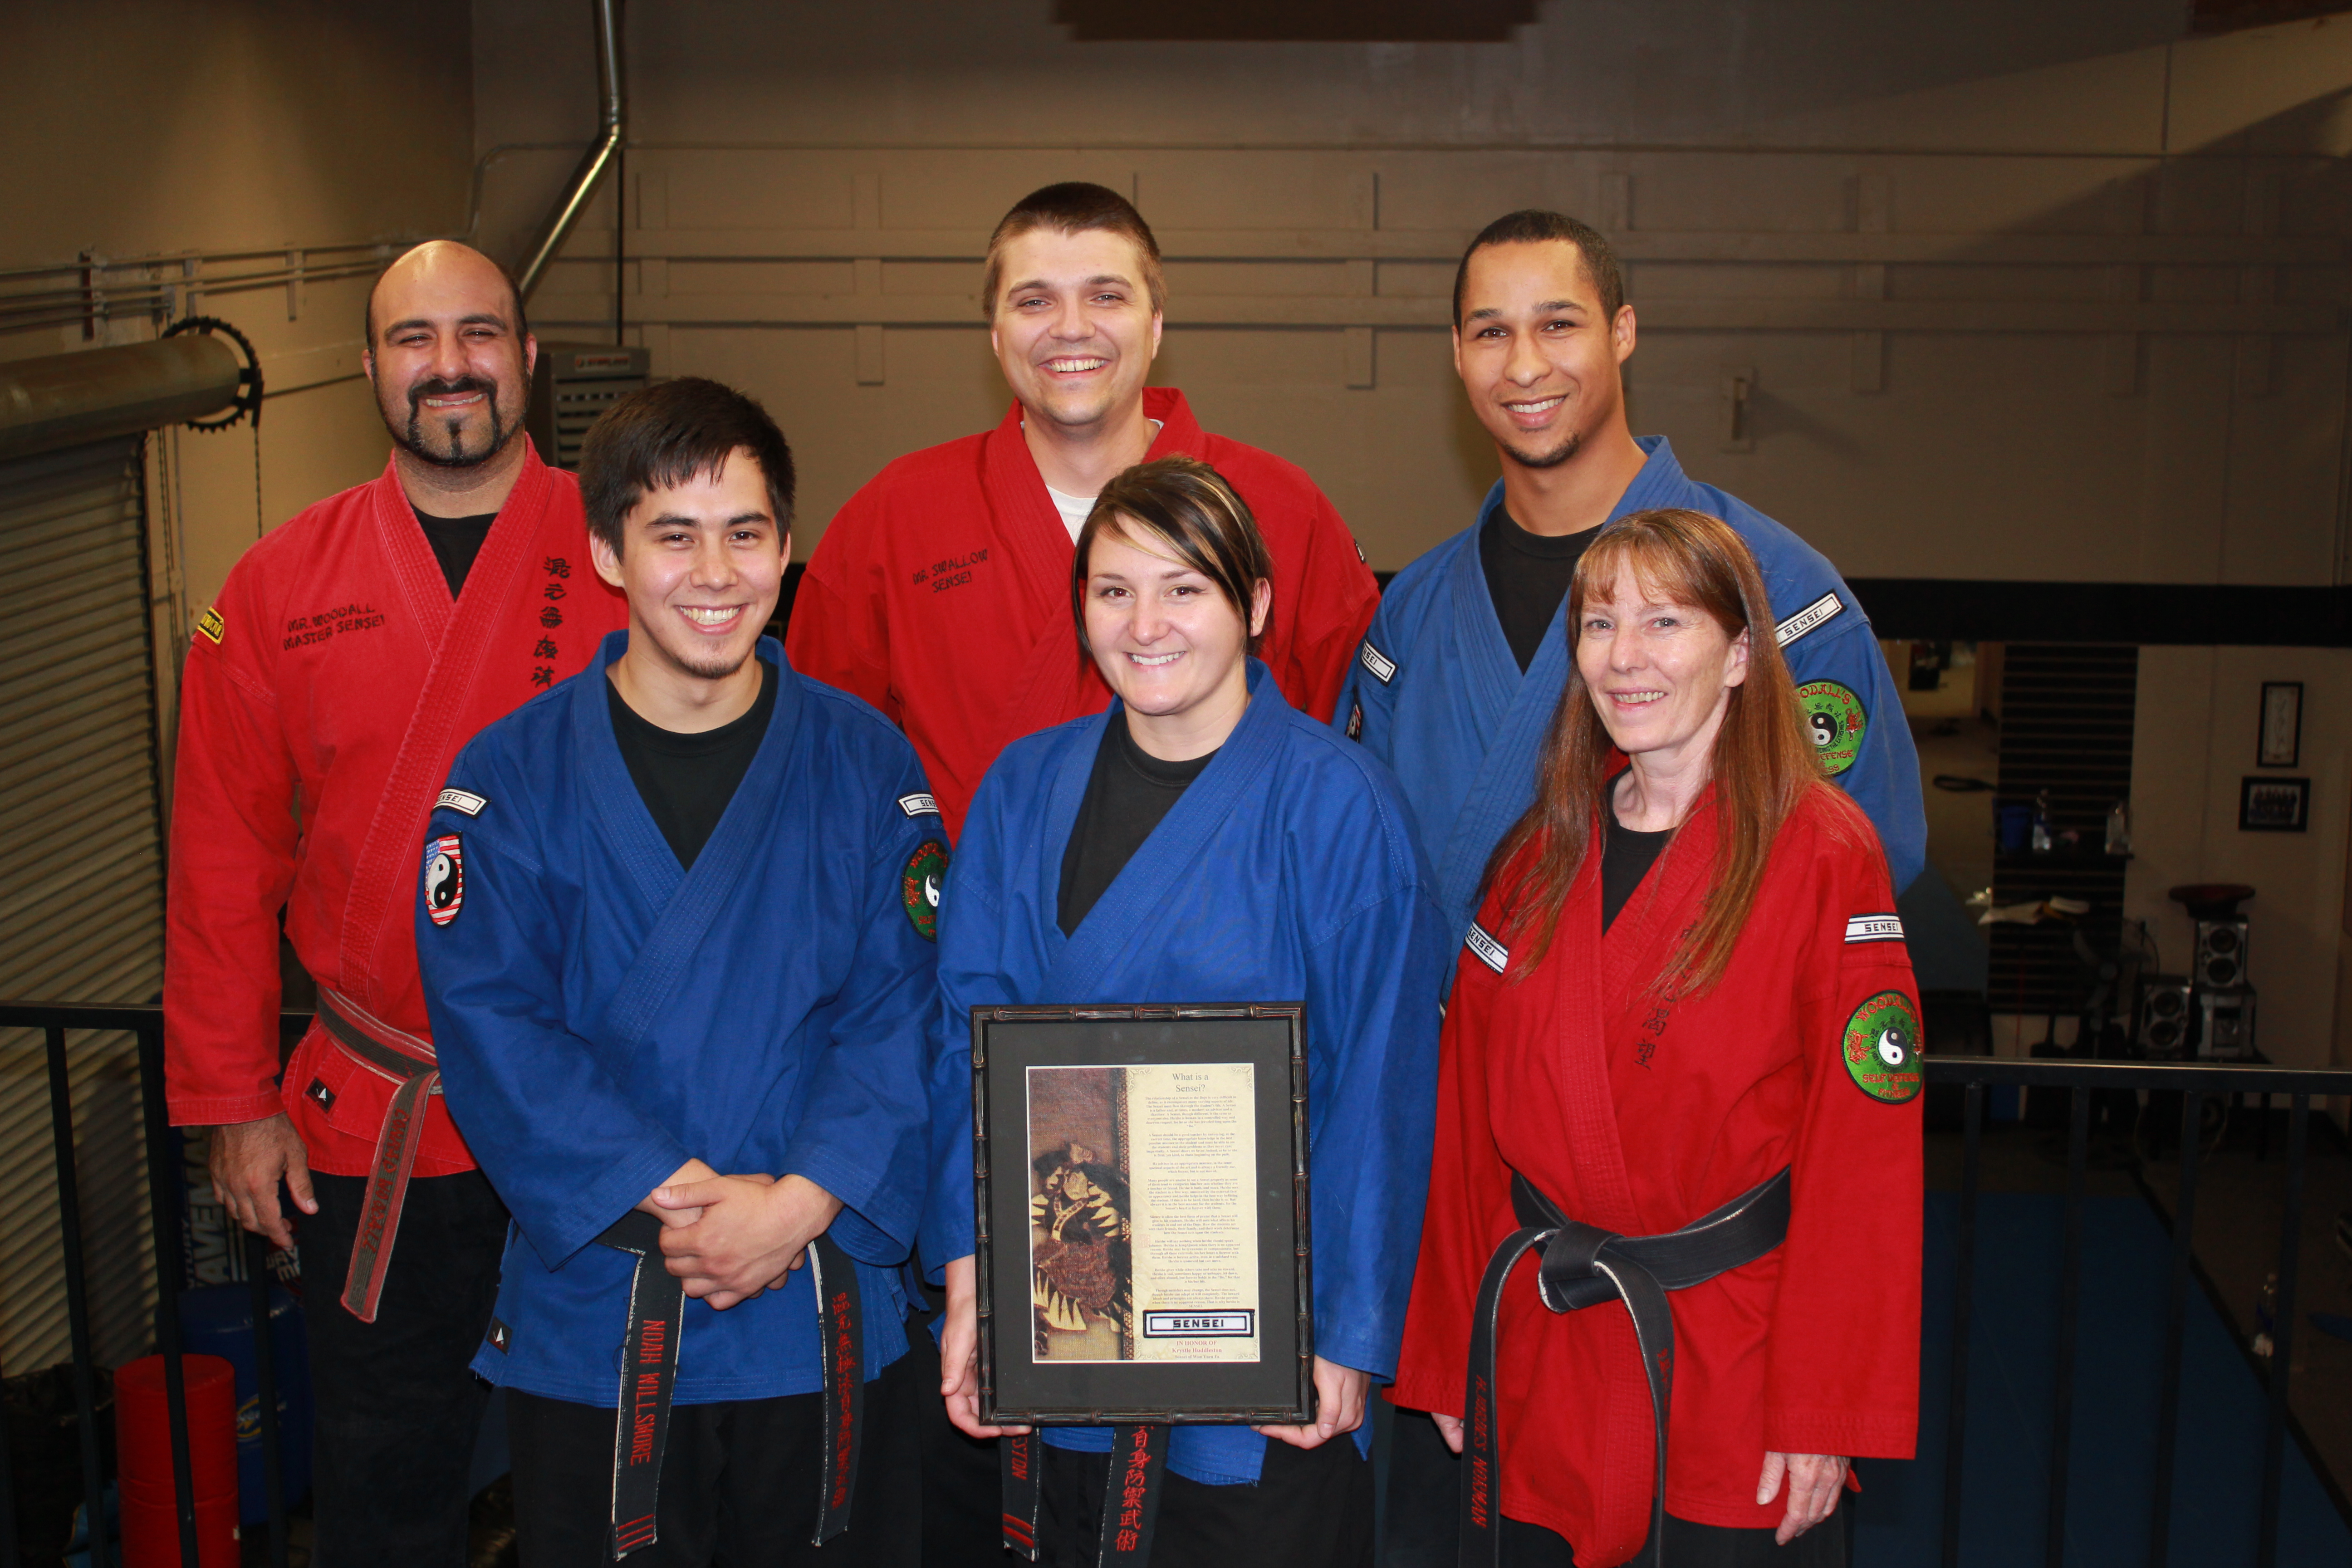 The six Sensei's. Back row: Conrad Woodall, Joseph Swallow, Theo Schubert Front row: Noah Willsmore, Krystle Huddleston, Hjordes Norman